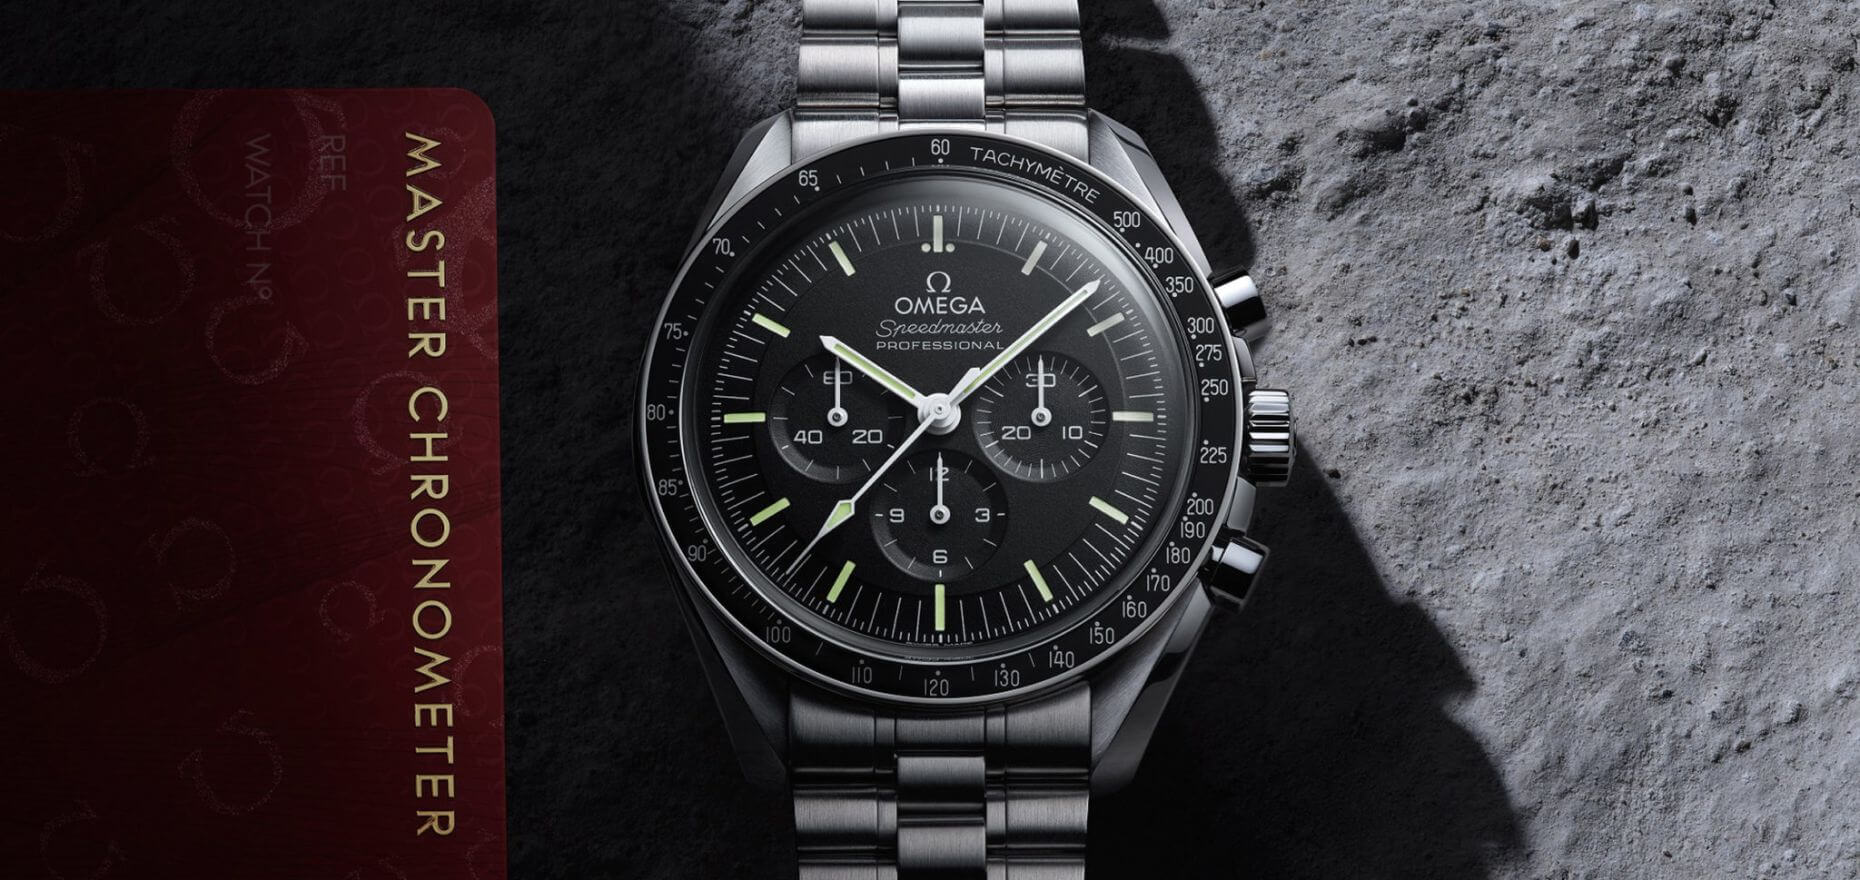 The new Omega Speedmaster Professional Moonwatch Master Chronometer: From 1861 to 3861